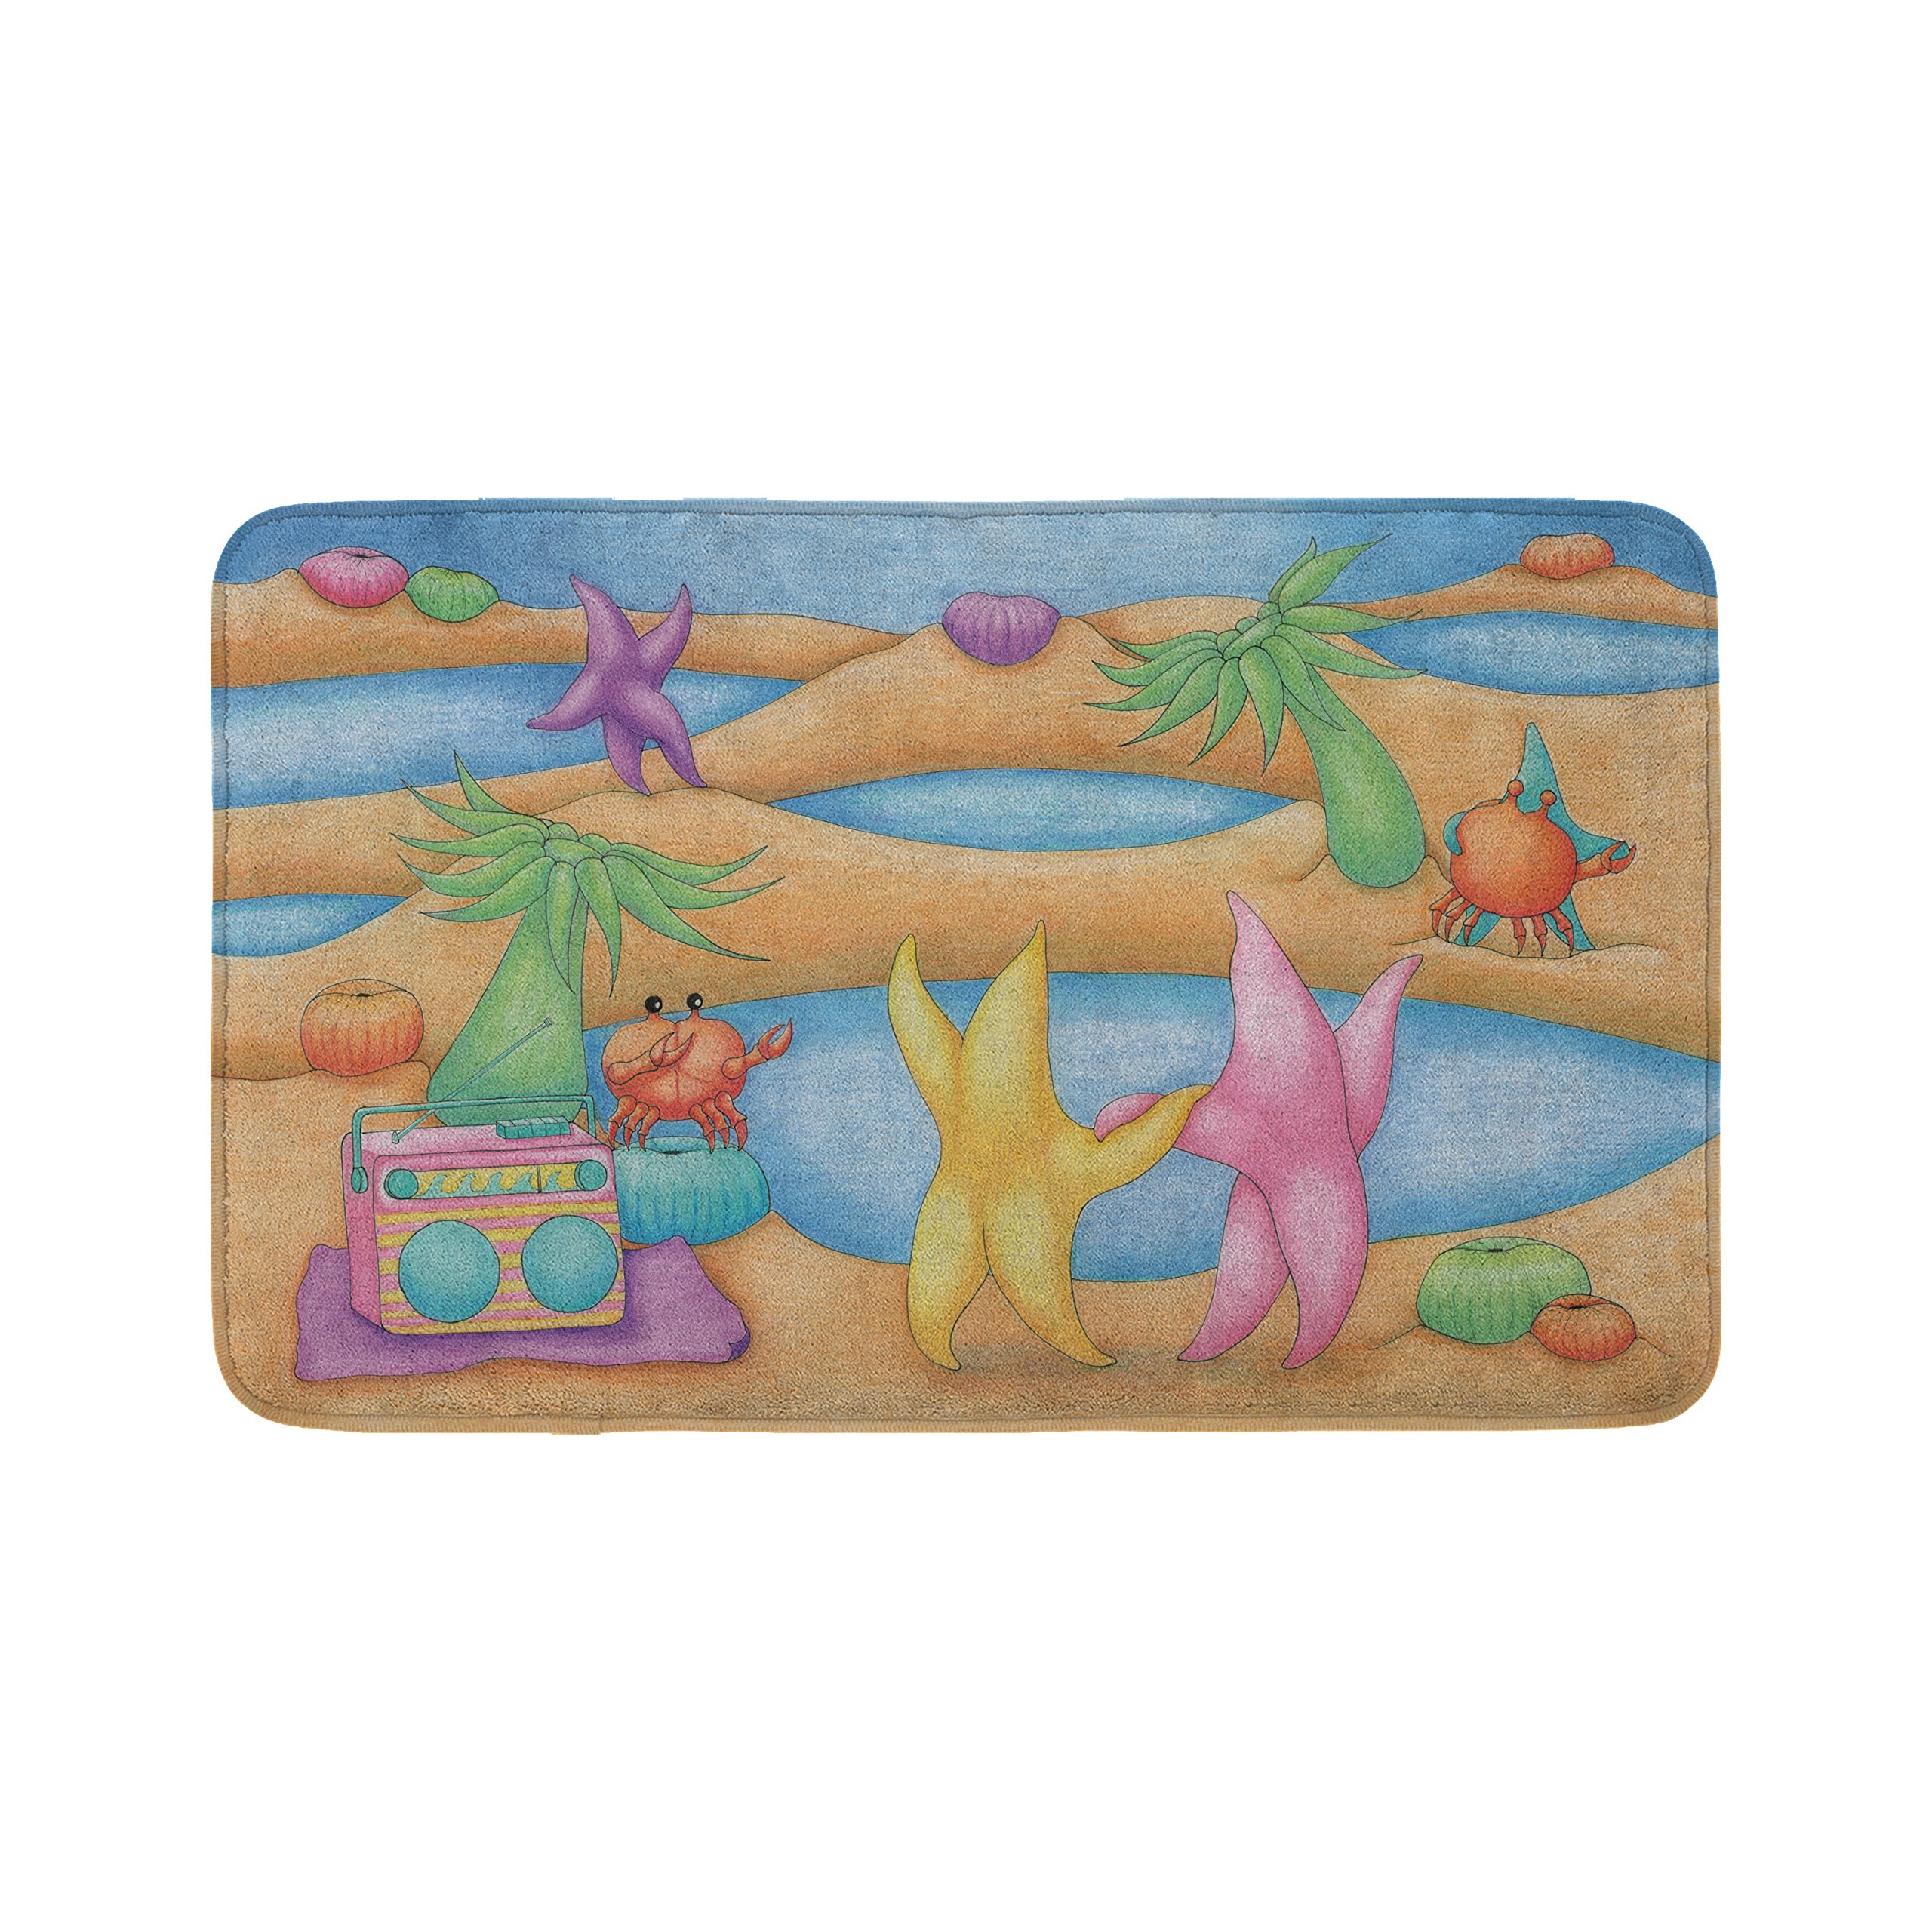 Mouse + Magpie Bath Mat for Kids, Skid-Proof, Memory Foam, Soft, Quick-Dry Microfiber, 31''x19'' for Toddler, Kid, Child Bathroom, Dancing on the Beach